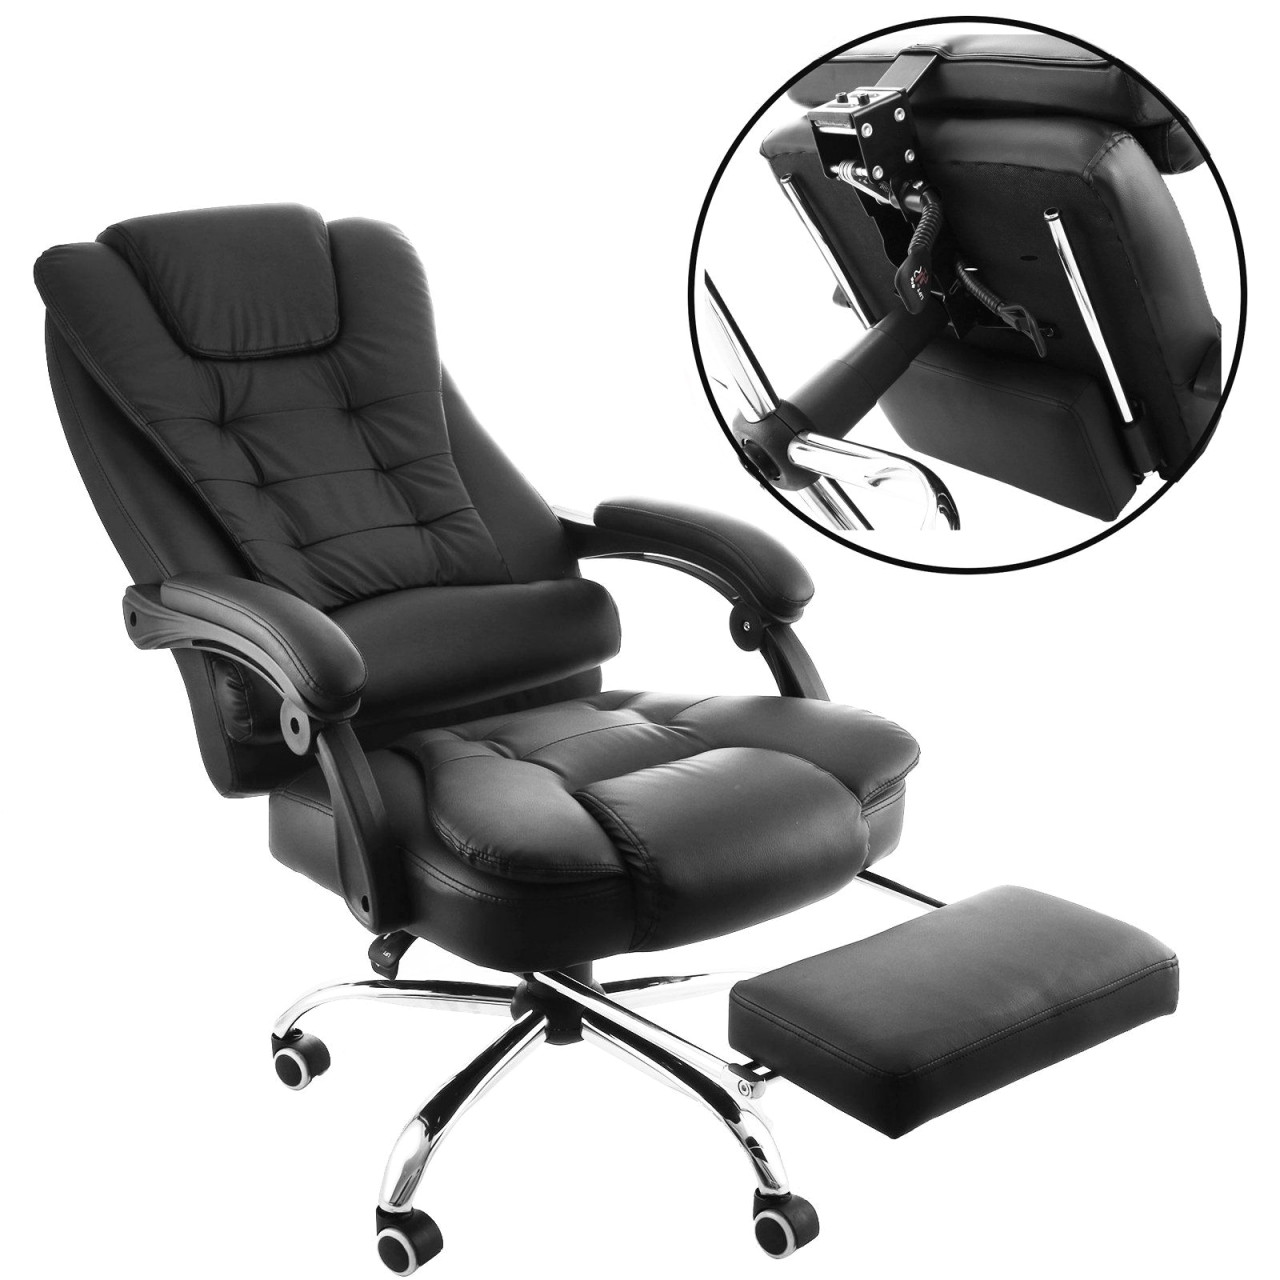 12 photos gallery of agha reclining office chair with footrest